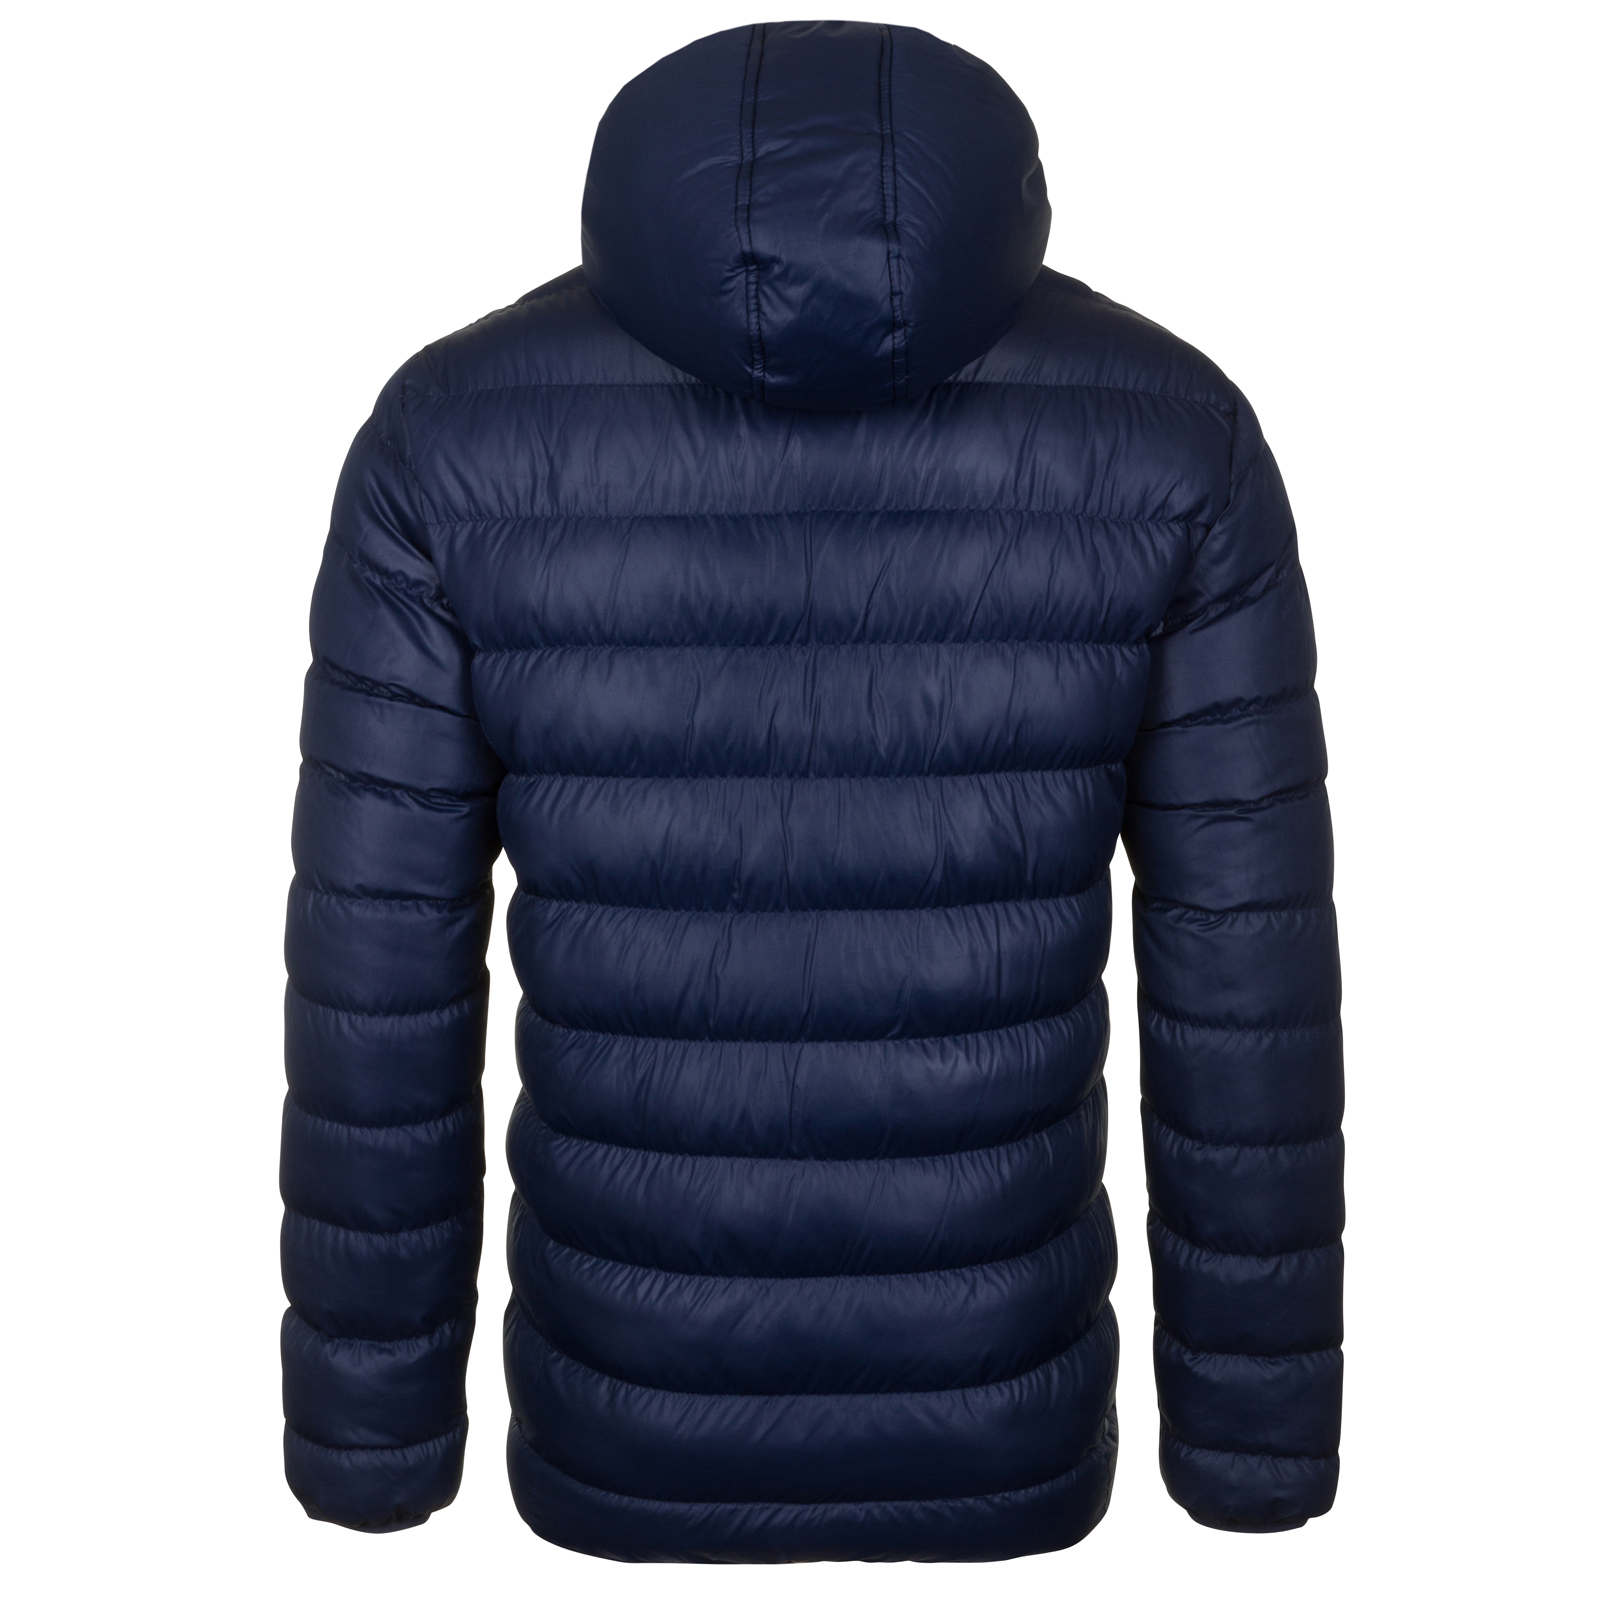 Details about FC Barcelona Official Football Gift Mens Quilted Hooded  Winter Jacket c0be98f02477